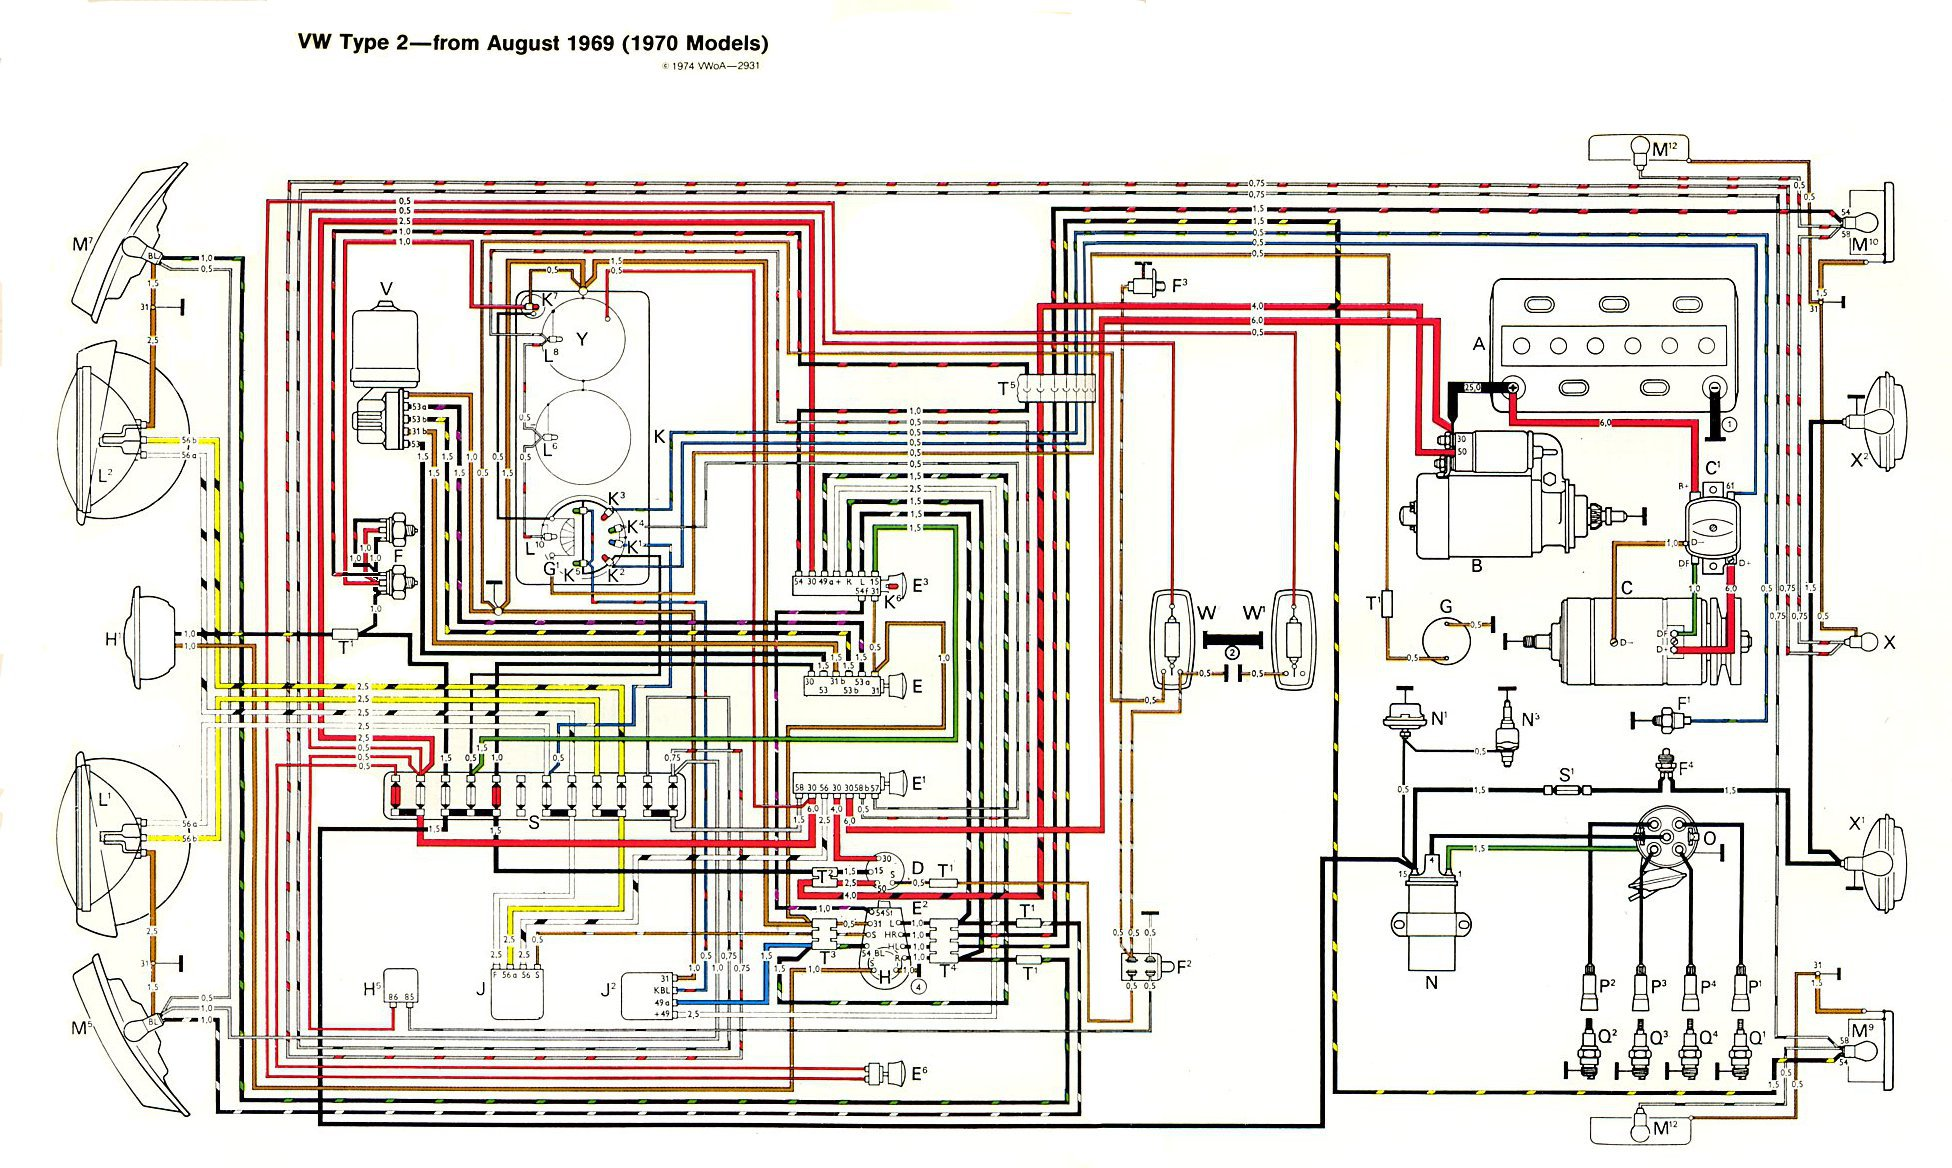 baybus_70 thesamba com type 2 wiring diagrams 1971 vw bus wiring diagram at honlapkeszites.co